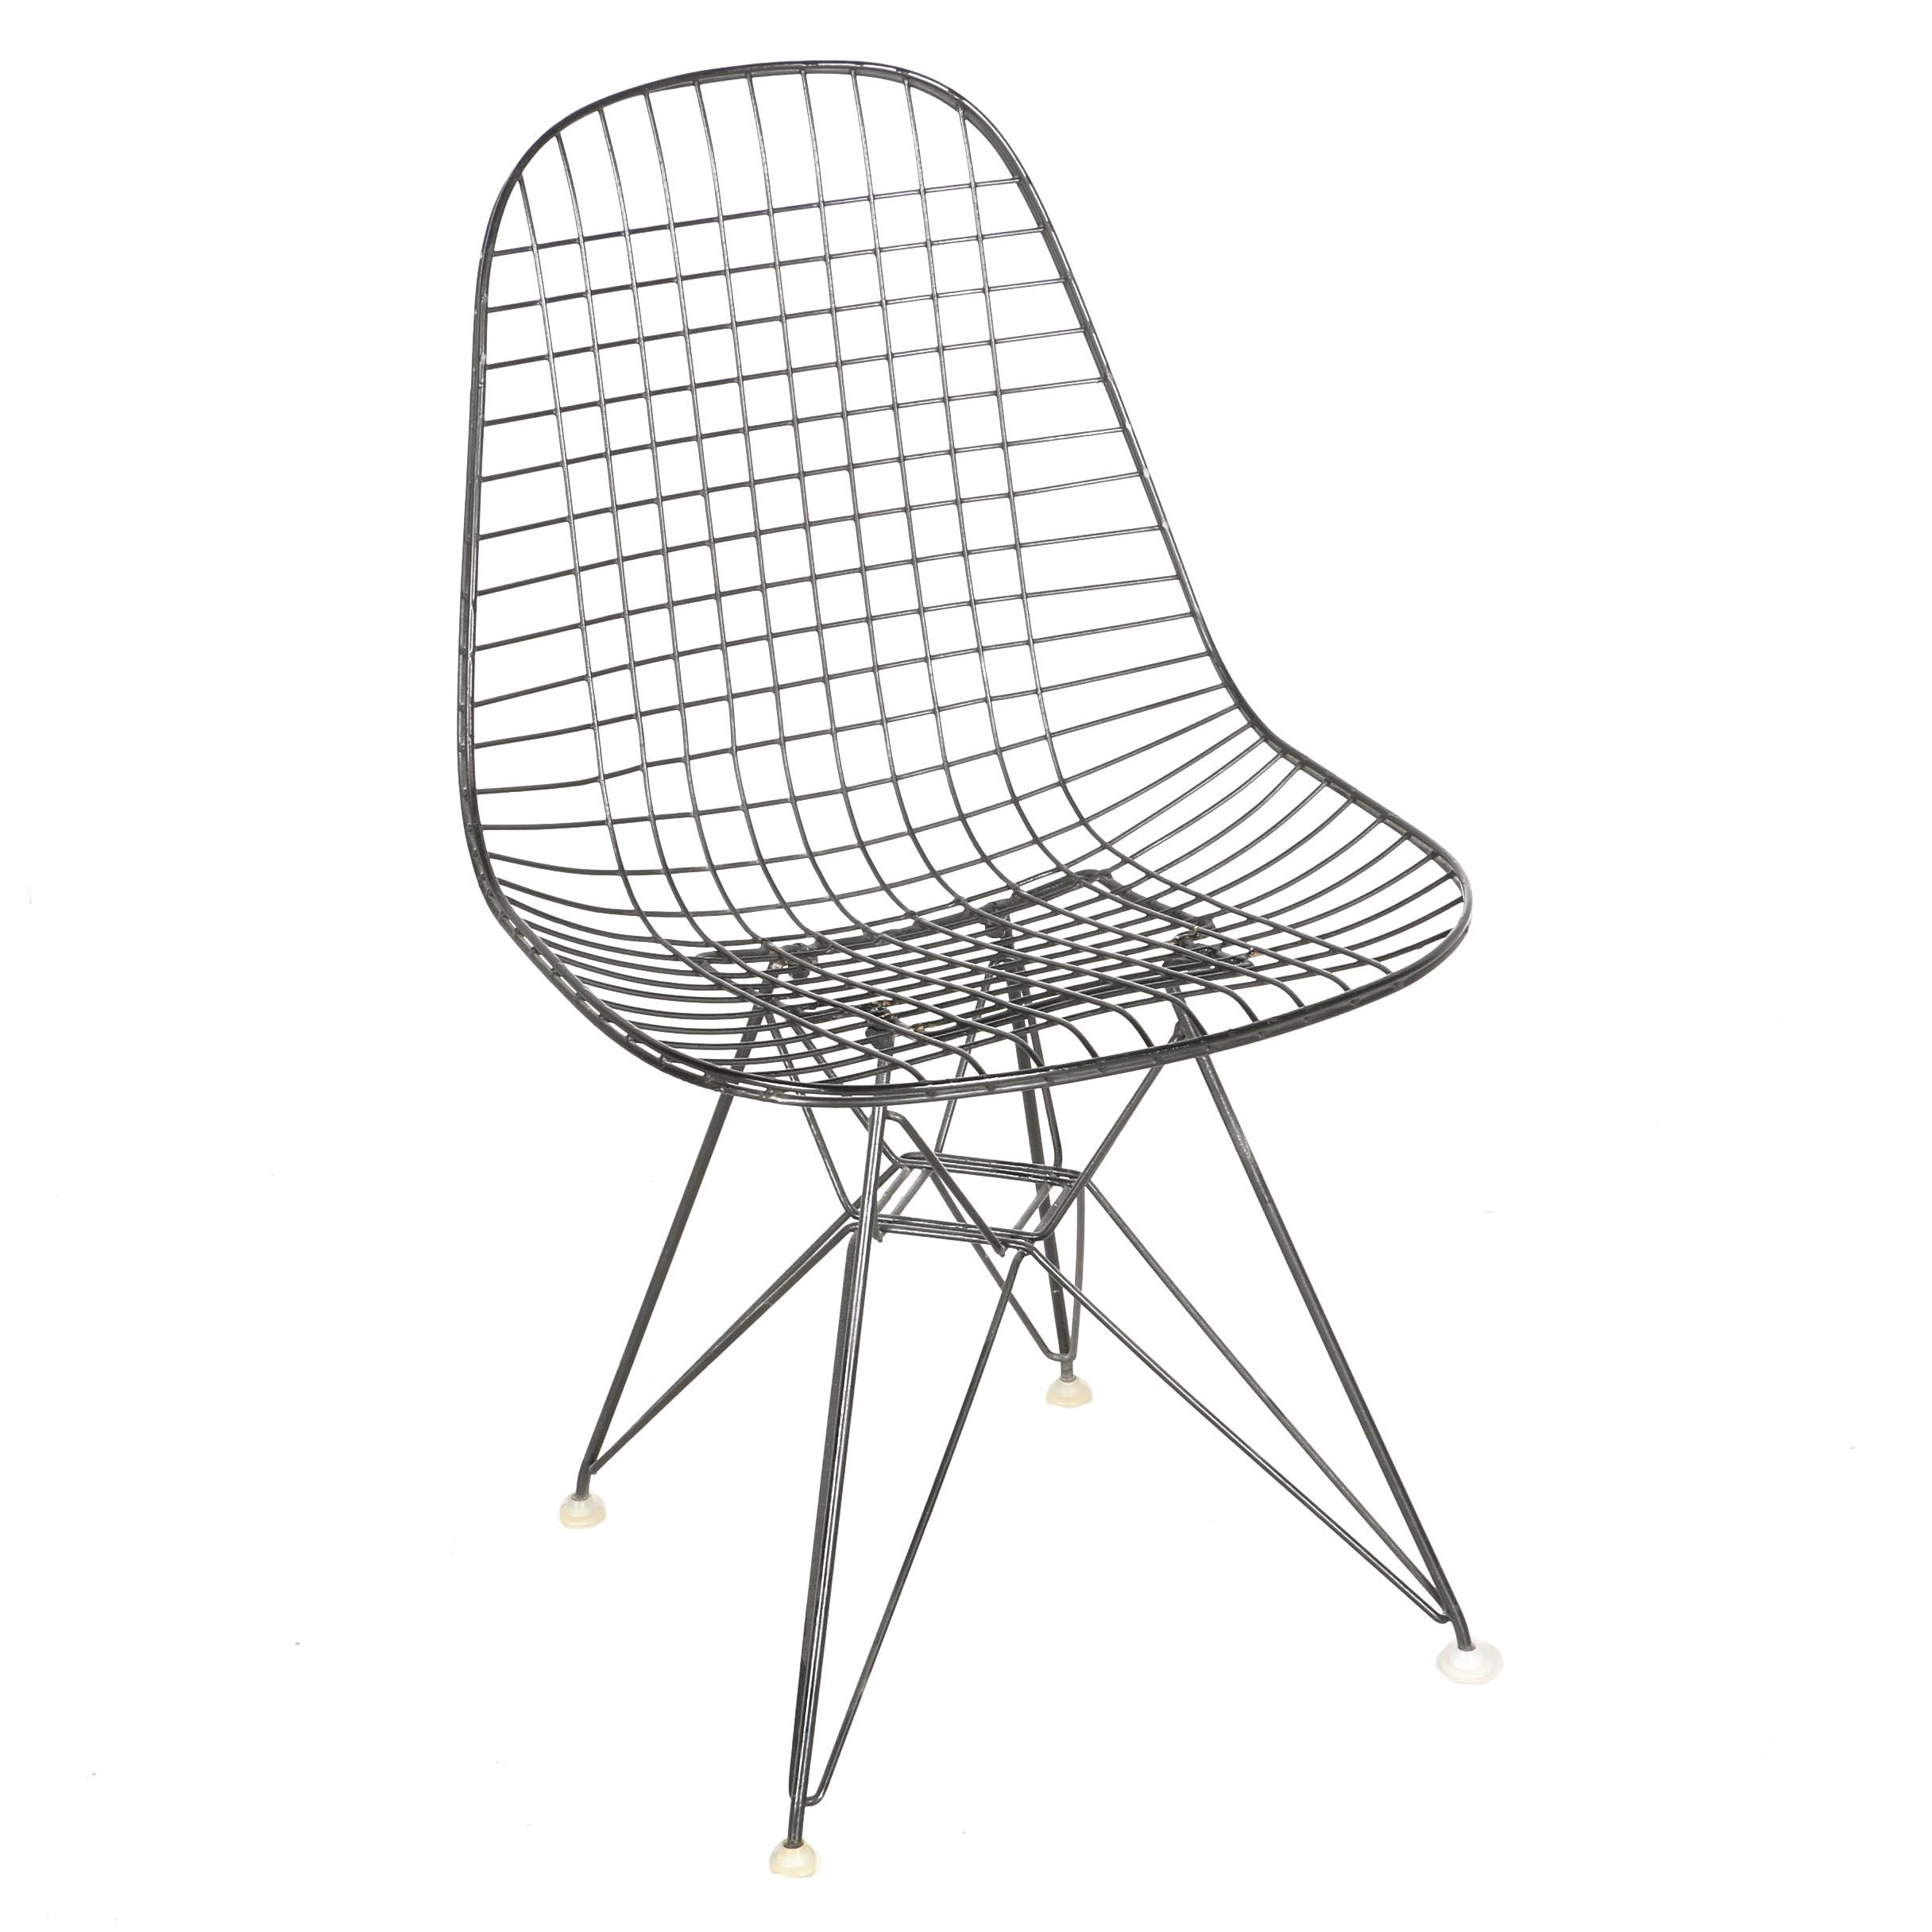 """Mid Century Modern """"DKR-1"""" Wire Chair by Eames for Herman Miller With Provenance"""